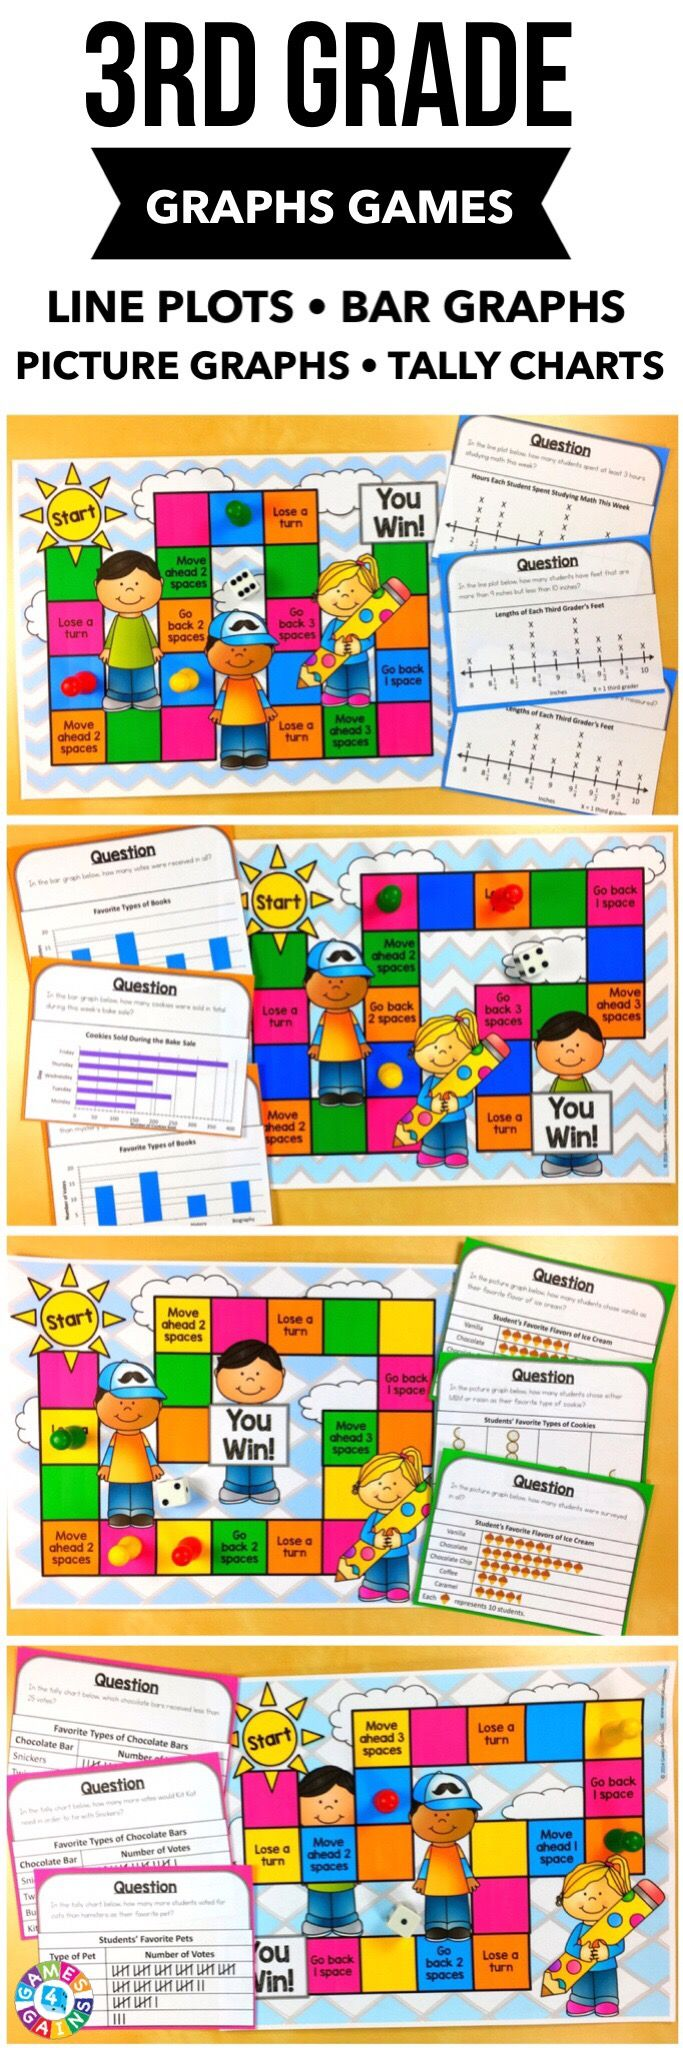 """LOVE the variety of graphs and the question levels in these games!"" This 3rd Grade Graphs Games Bundle includes 4 different board games for practicing line plots, bar graphs, picture graphs, and tally chart.  Each game includes 32 question cards with one-step and two-step problems to interpret the graph and a game board. These games support 3rd grade Common Core standards 3.MD.3 and 3.MD.4."